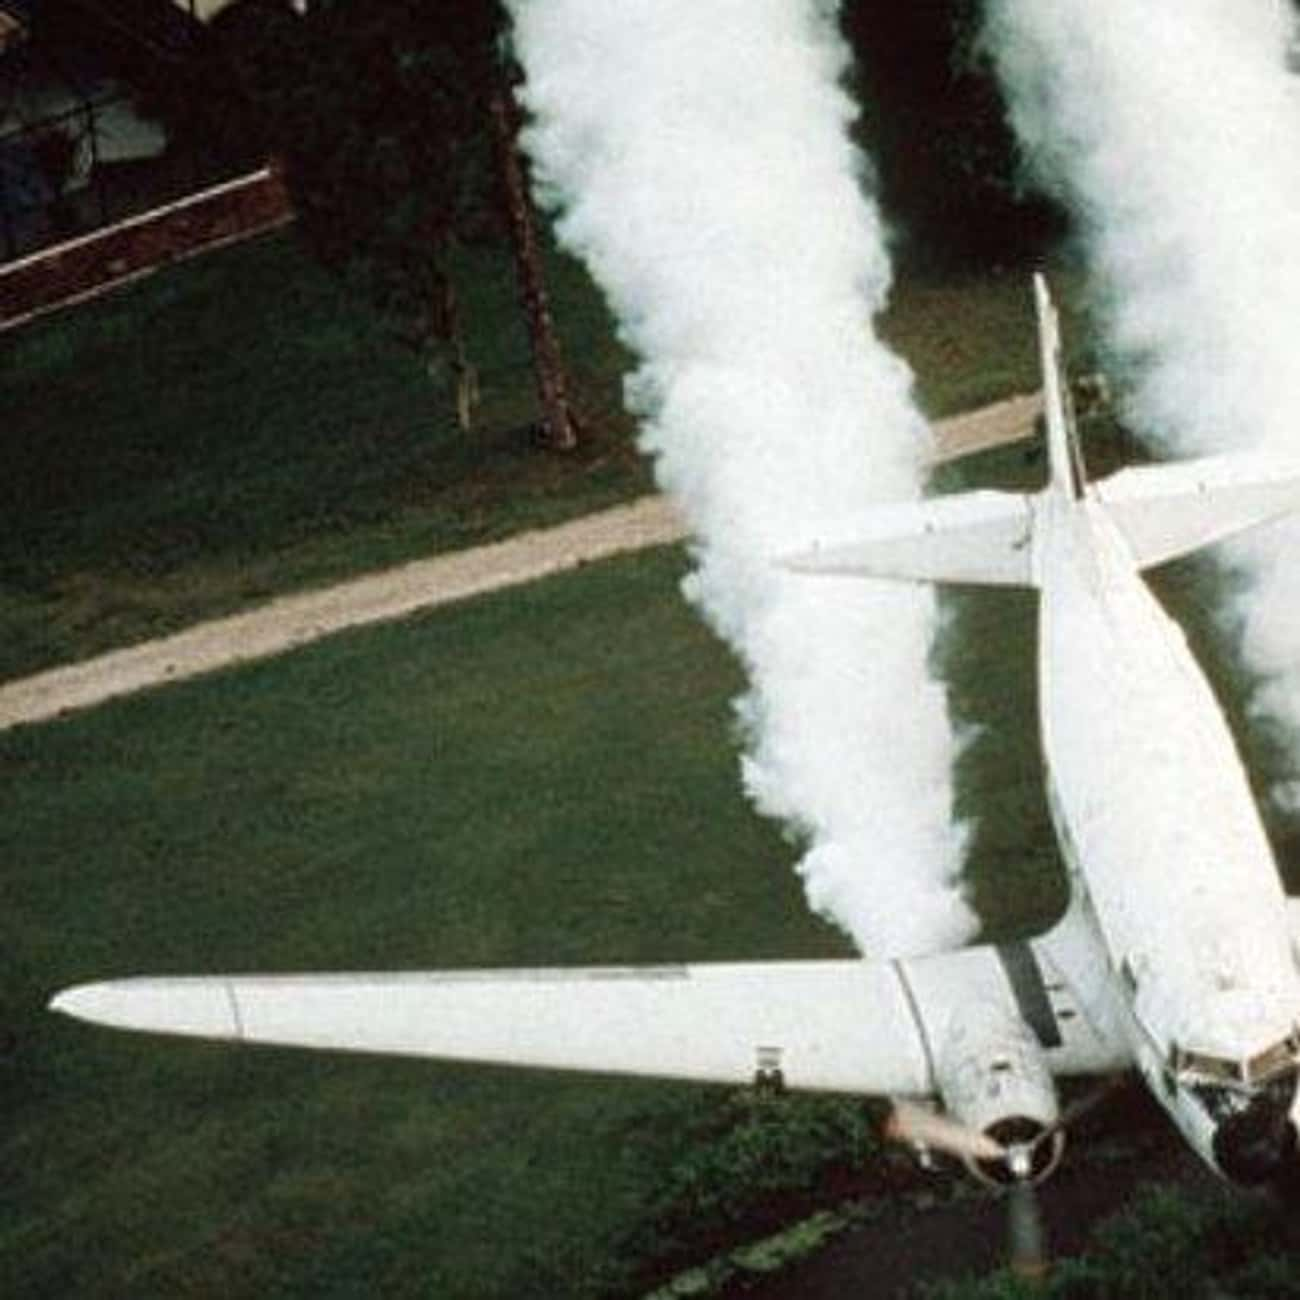 Deadly Chemical Sprays on Amer is listed (or ranked) 4 on the list The Most Evil U.S. Government Experiments On Humans